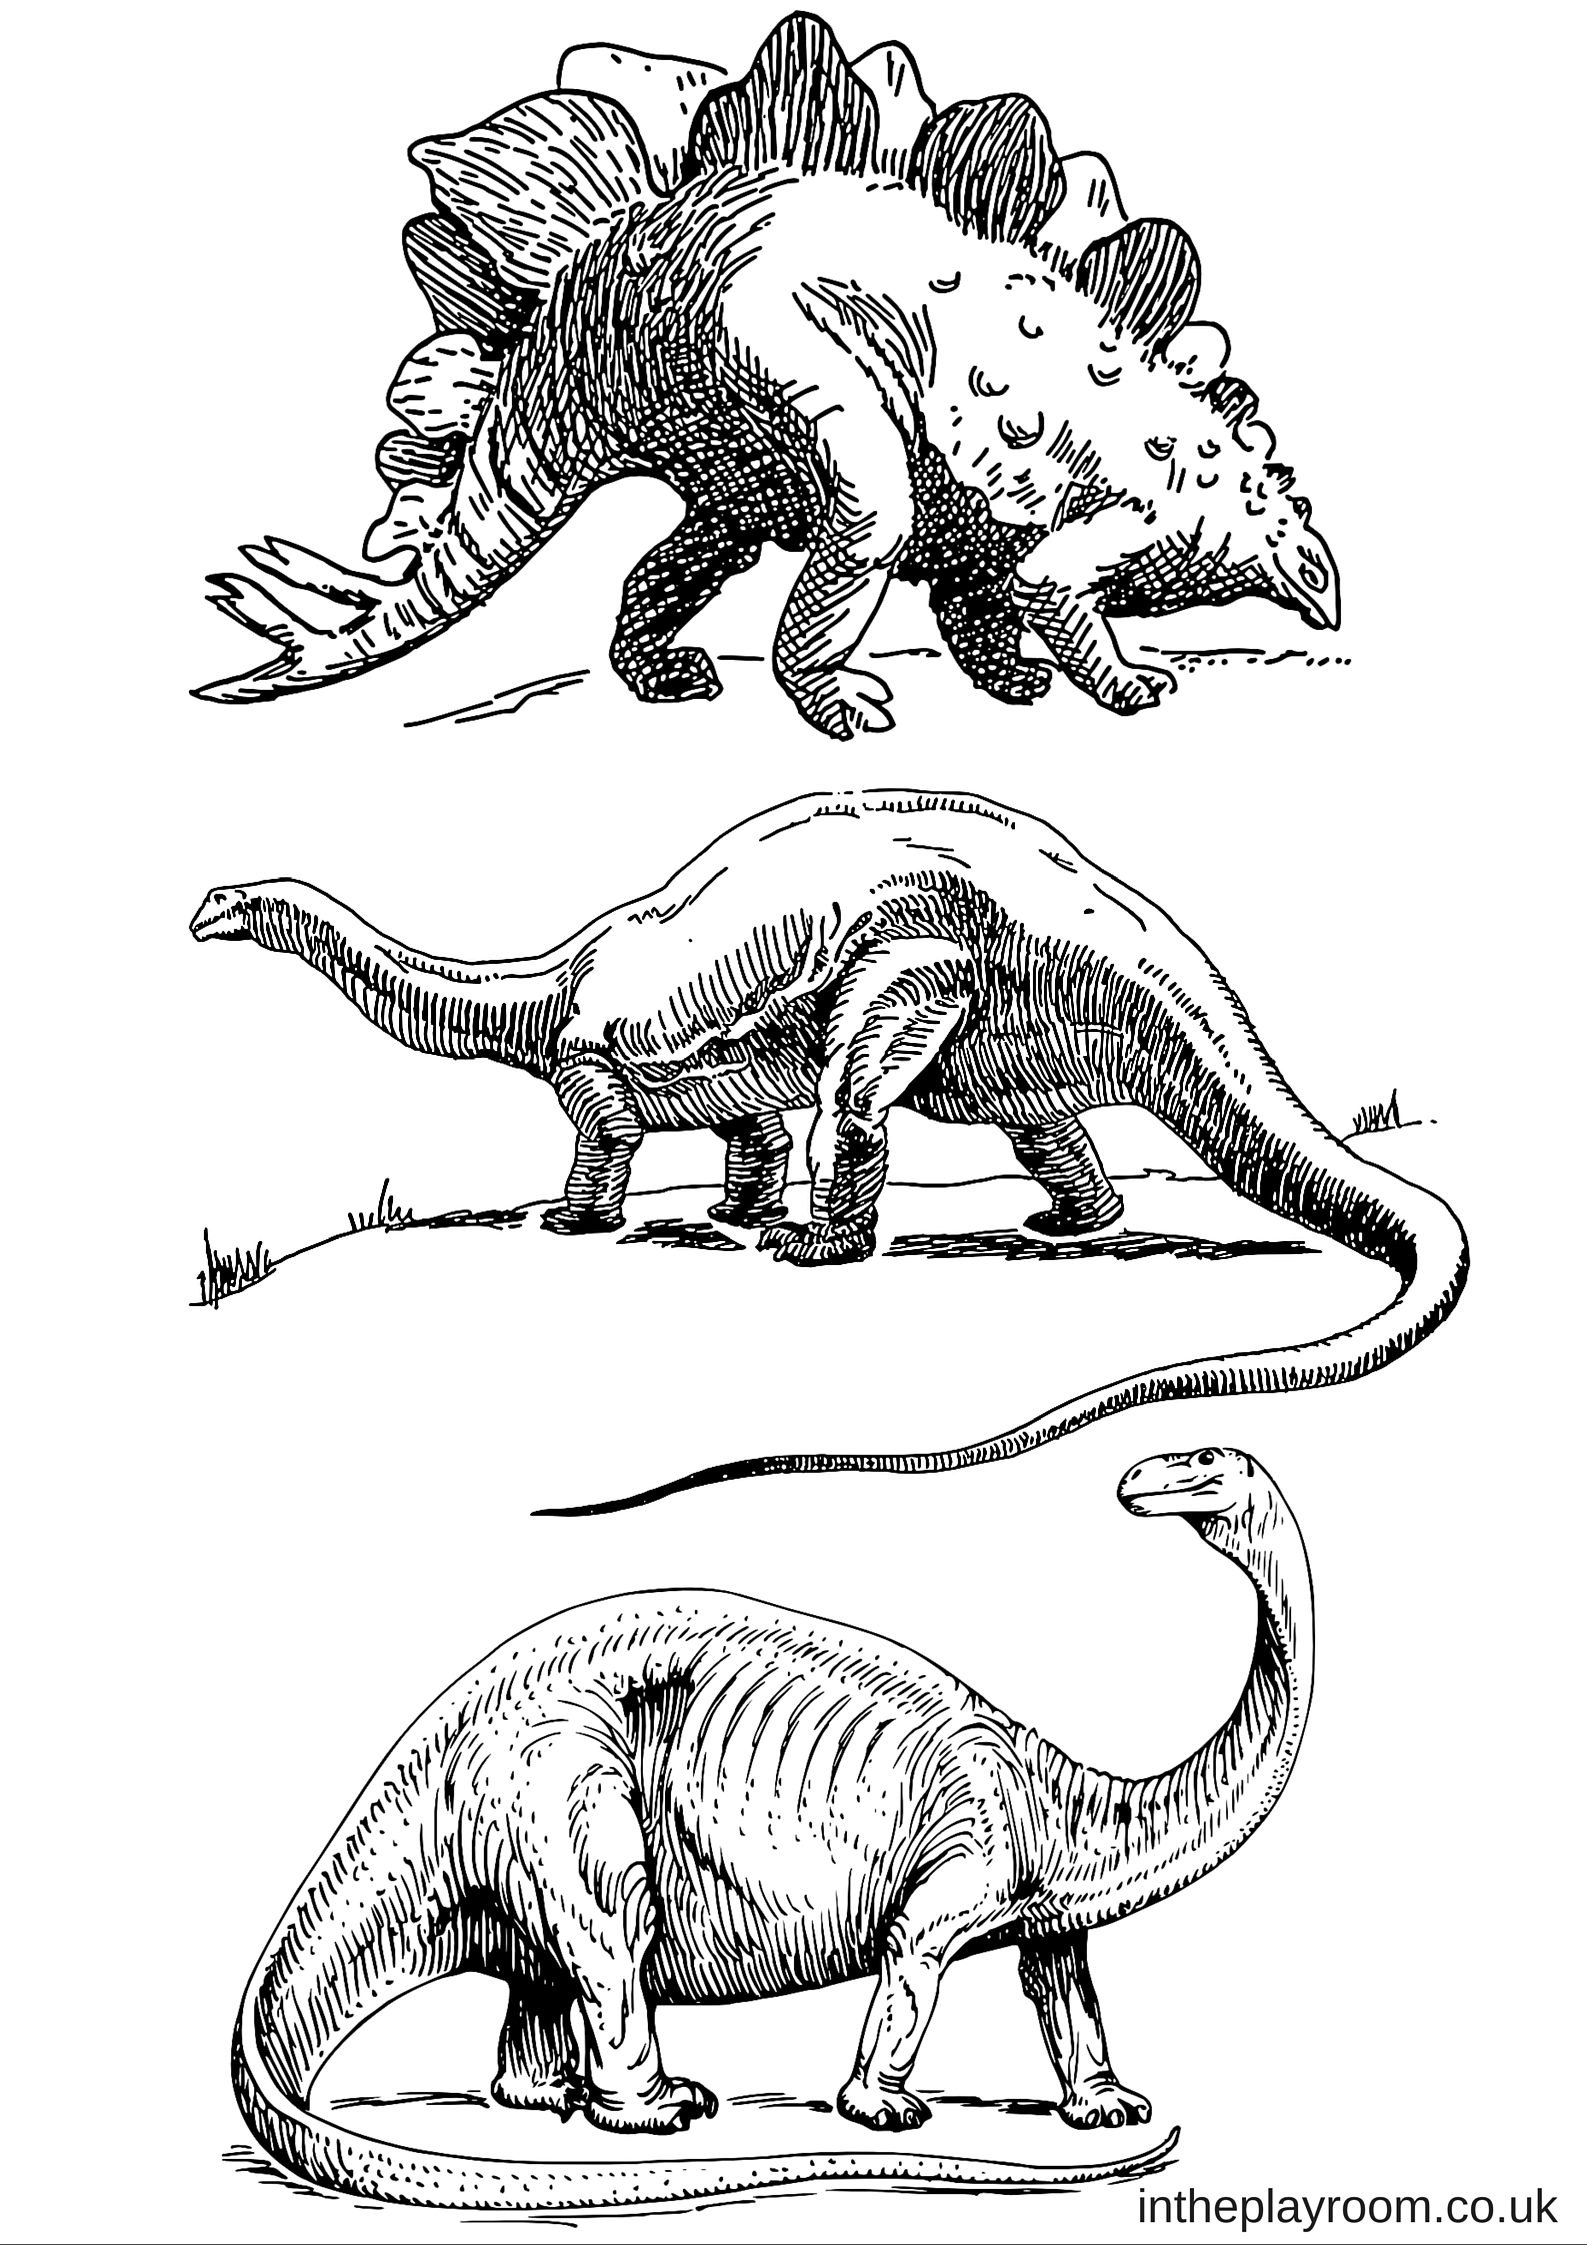 dinosaur print out coloring pages coloring pages dinosaur free printable coloring pages dinosaur coloring out pages print